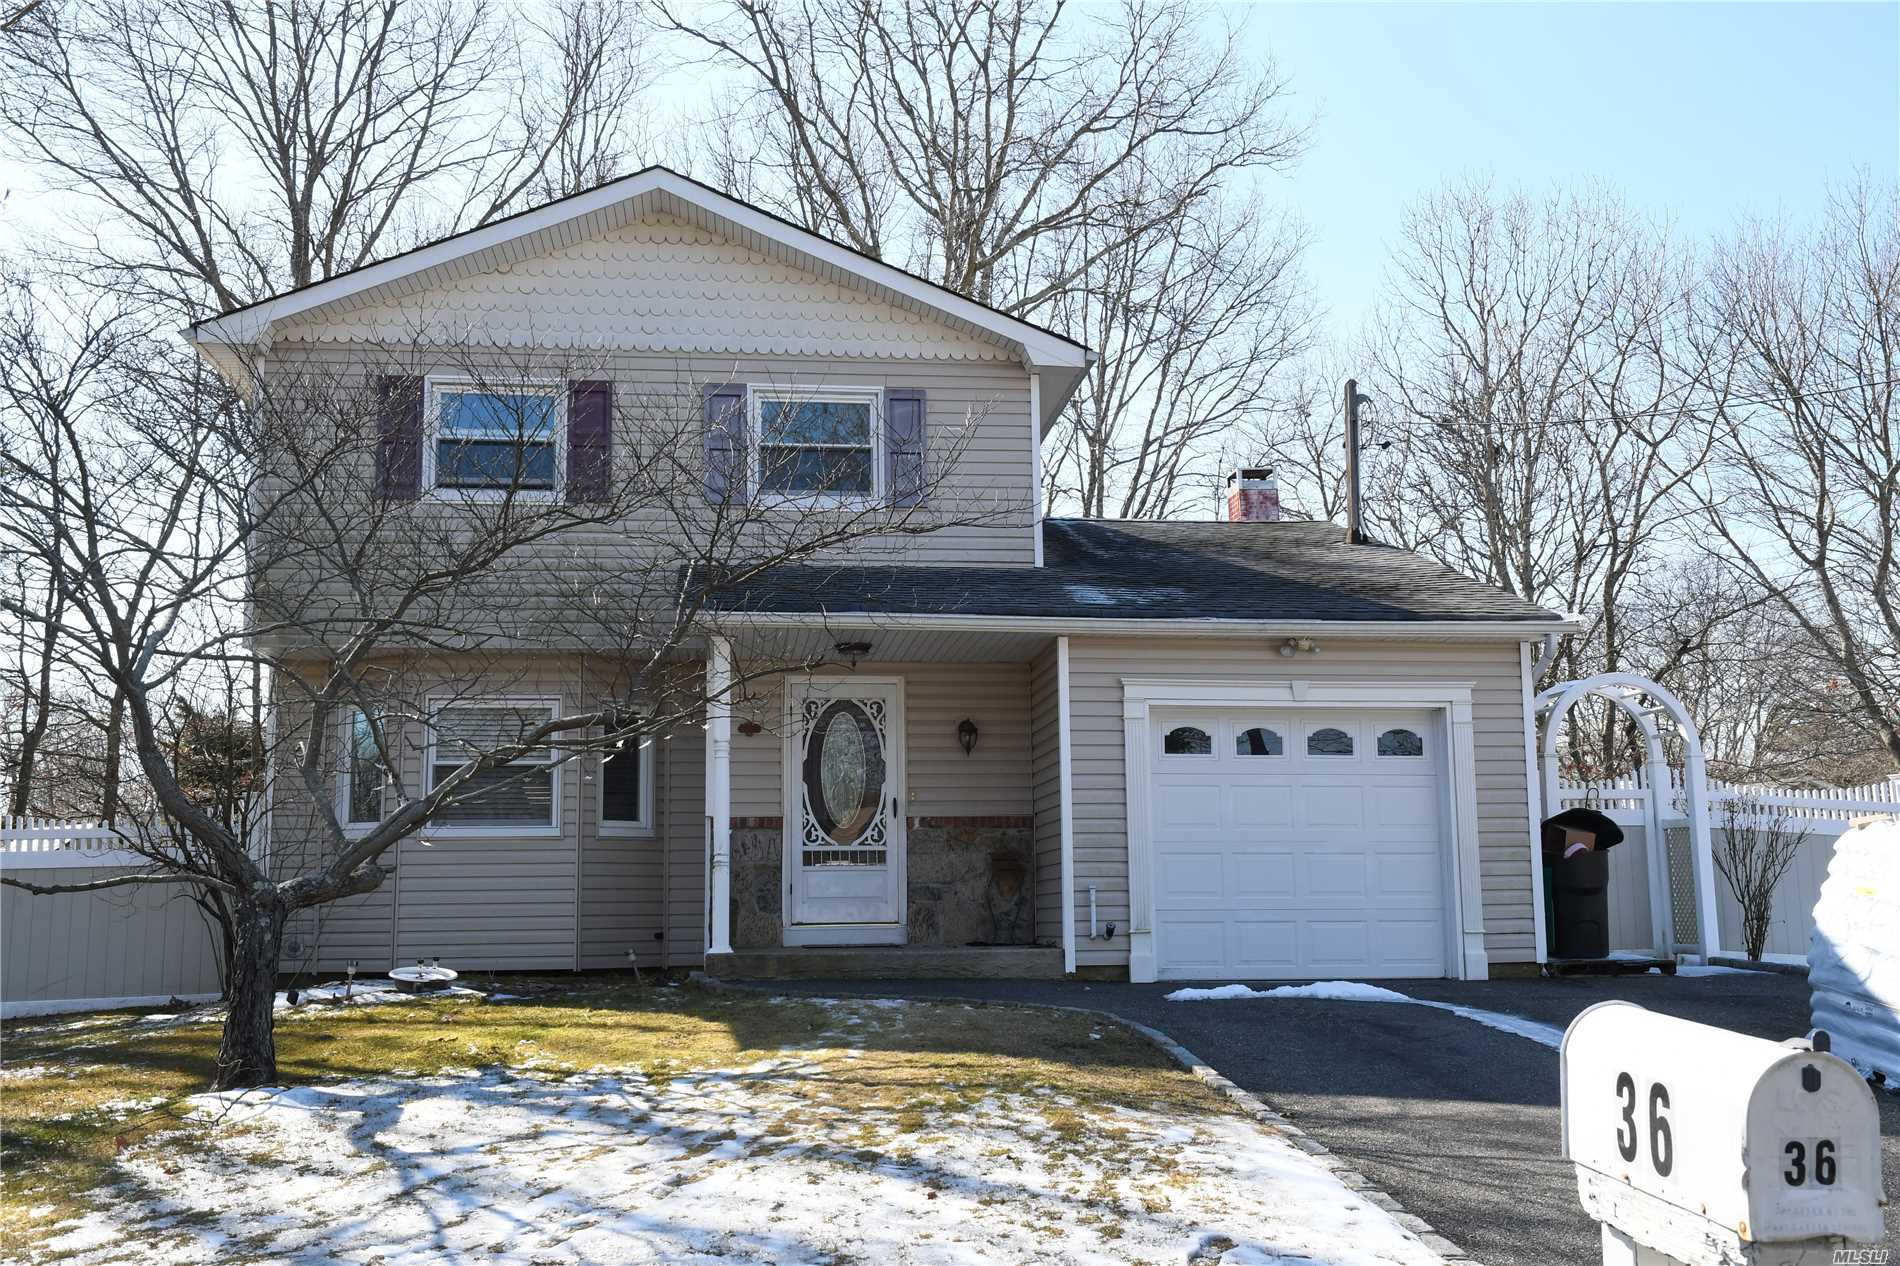 Welcome To This Mid Block Colonial Featuring New Siding, Windows, Hardwood Floors New Washer Dryer Full Bath Includes Soaking Tub.3 Bedrooms Den With A Half Bath. Beautiful Park Like Yard. Central Air 2 Zone Heat.